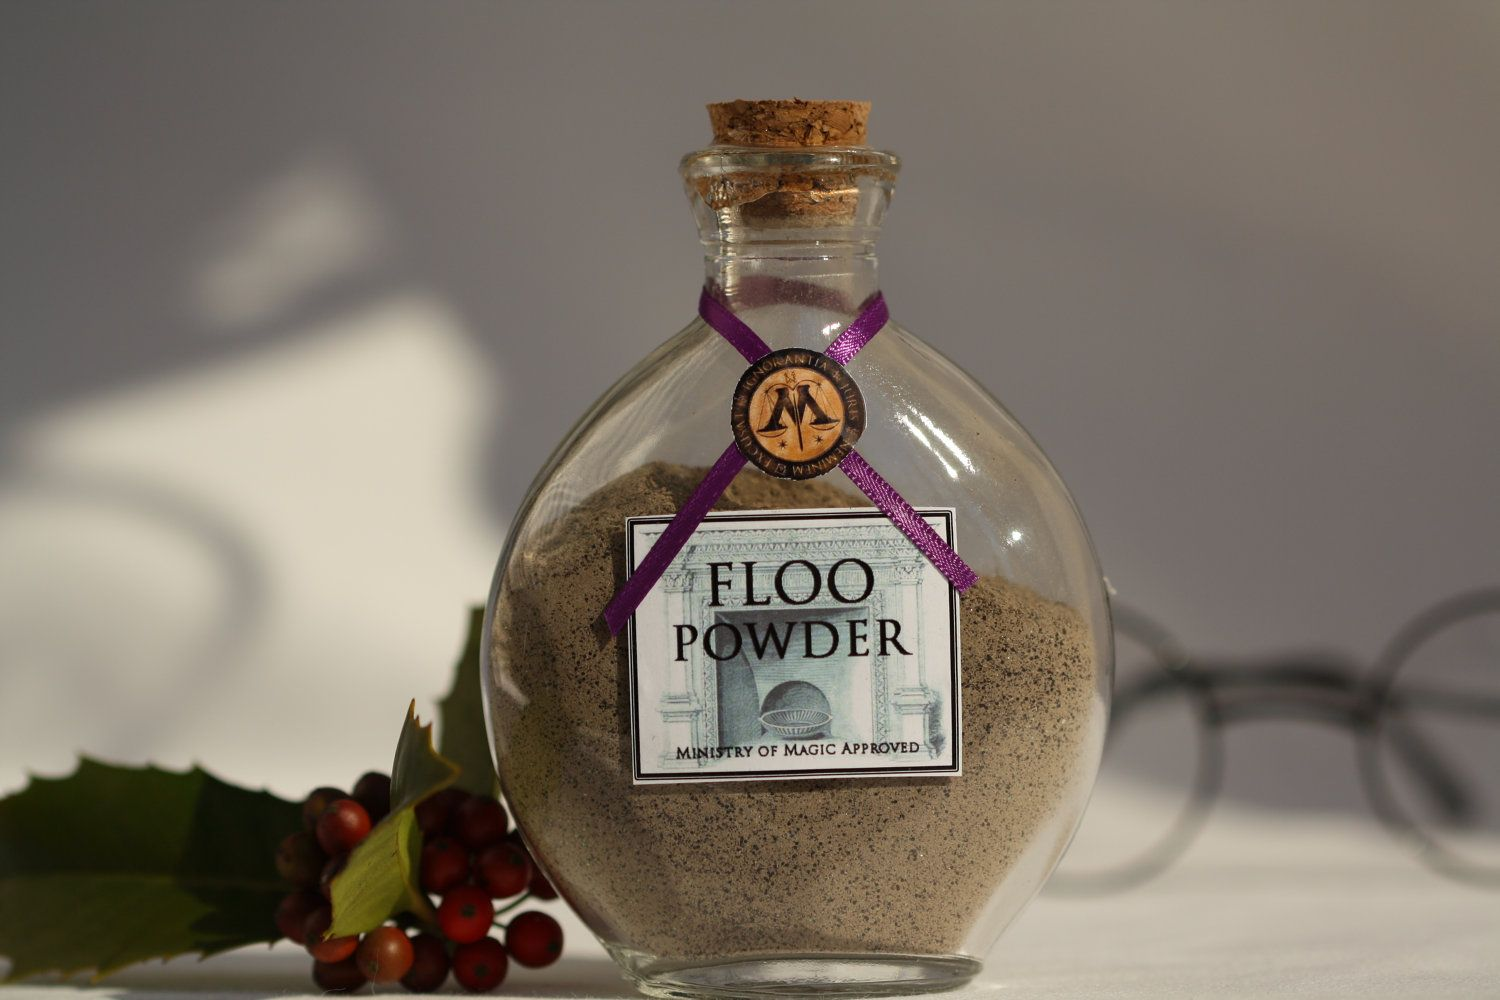 Harry Potters Wizards Floo Powder Great Stocking Stuffer Or Etsy Harry Potter Bathroom Harry Potter Items Harry Potter Room